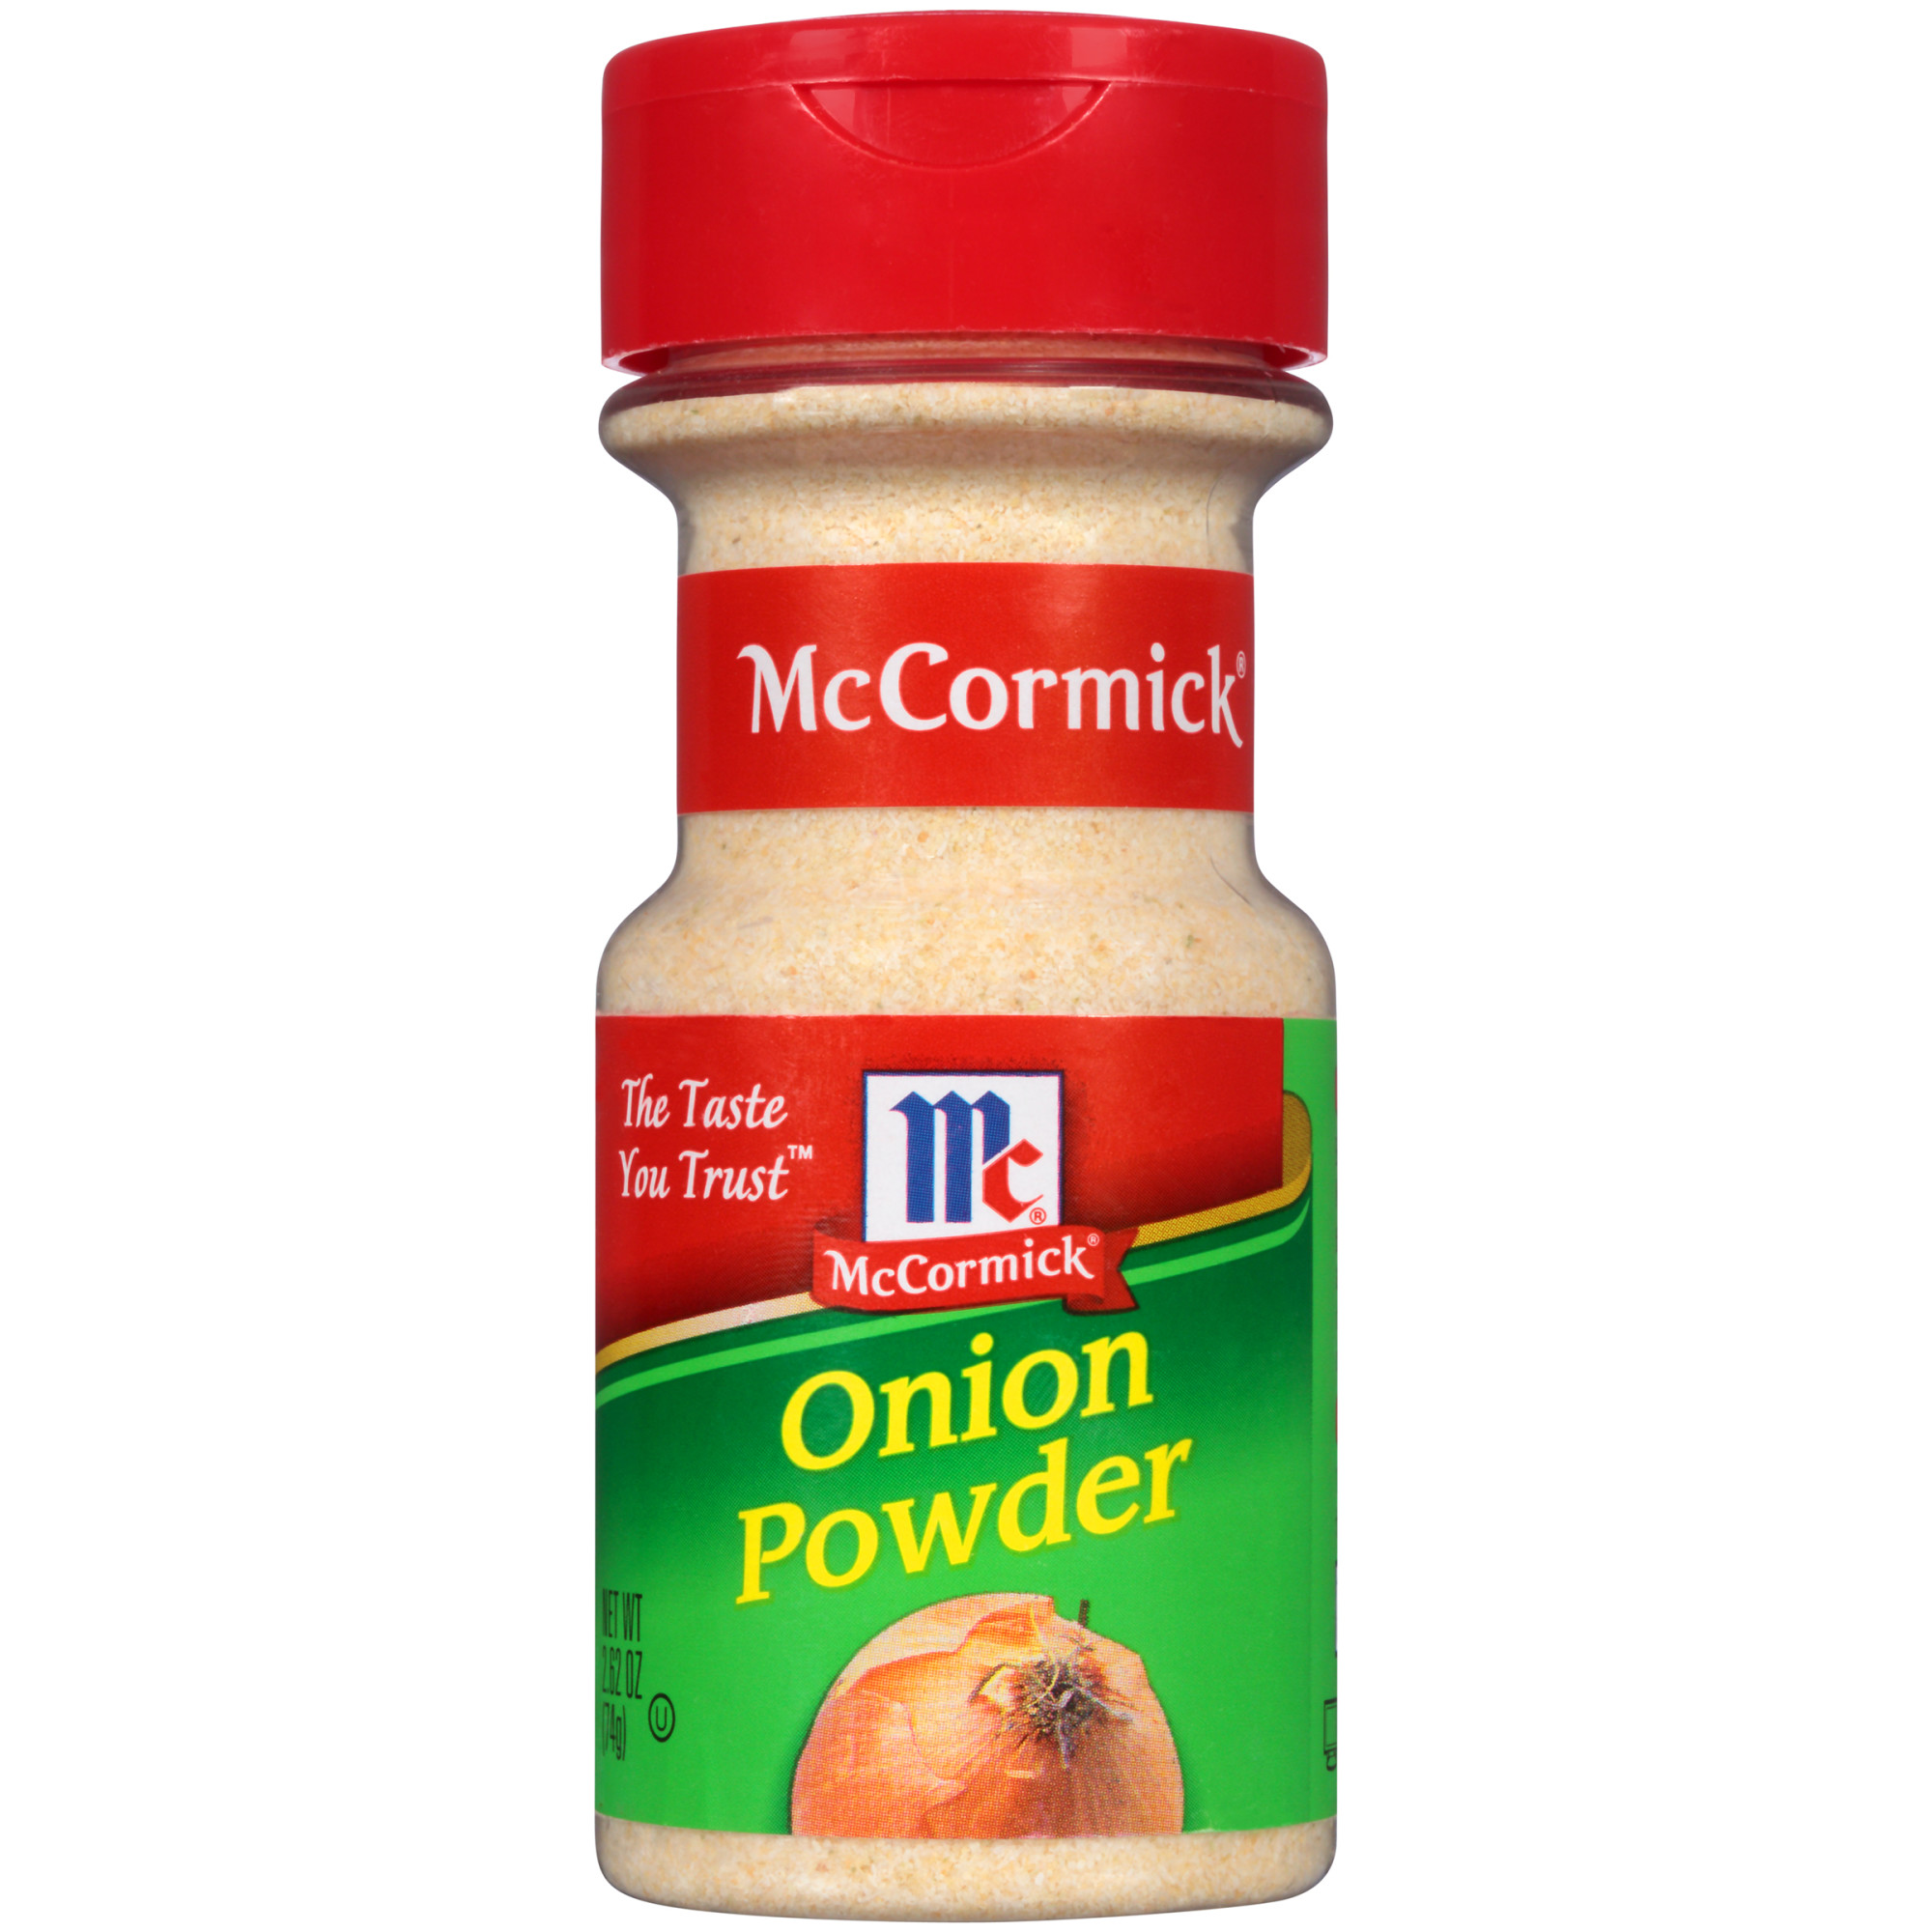 (2 Pack) McCormick Onion Powder, 2.62 oz